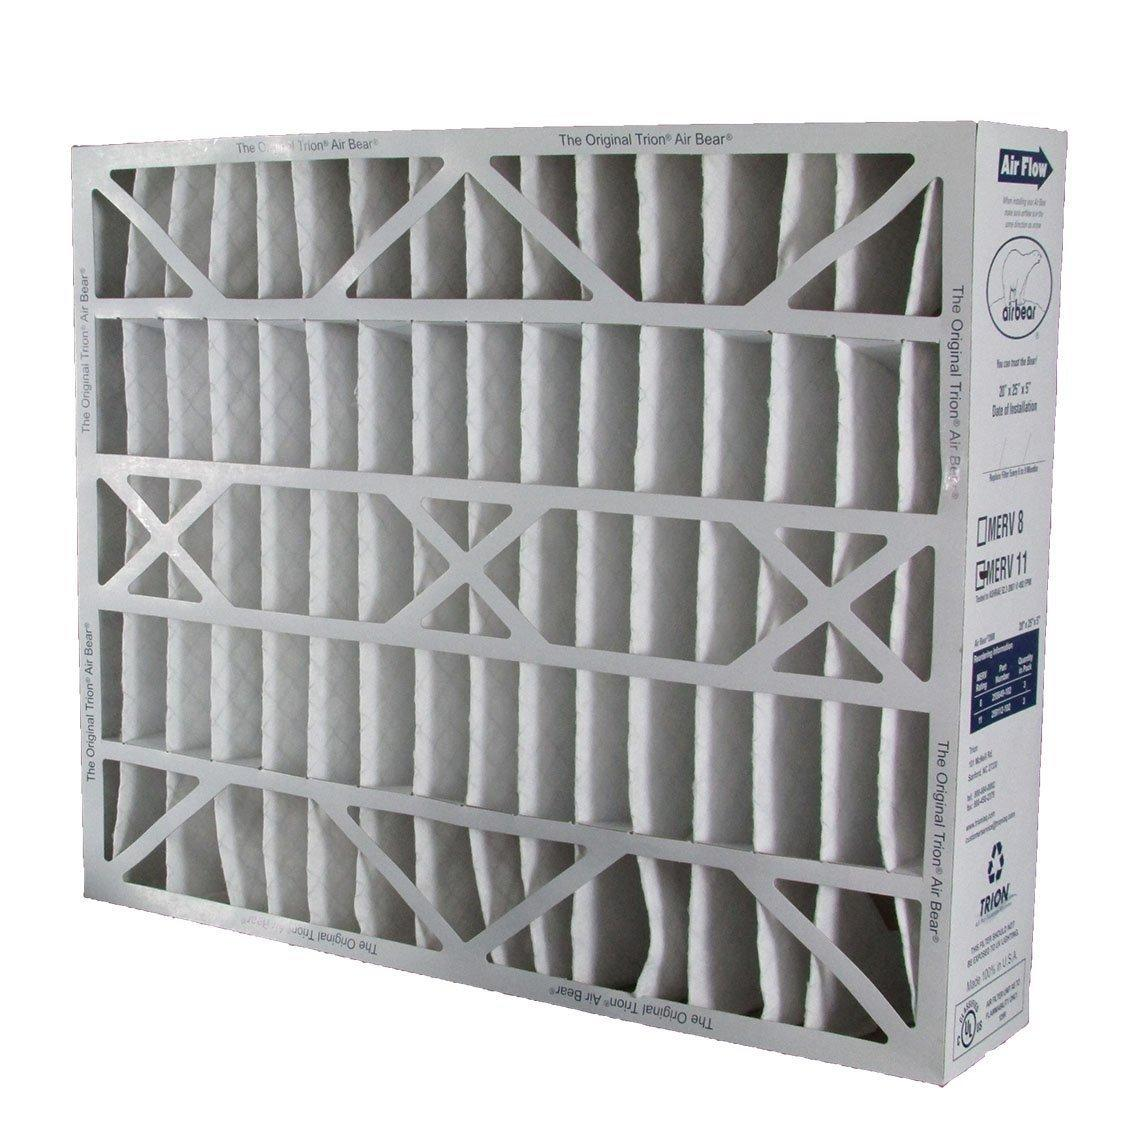 255649-102 Air Filter Filters Fast Compatible Replacement for Trion 20 x 25 x 5 MERV 8 2-Pack Actual Size: 19-5//8 x 24-1//8 x 4-7//8